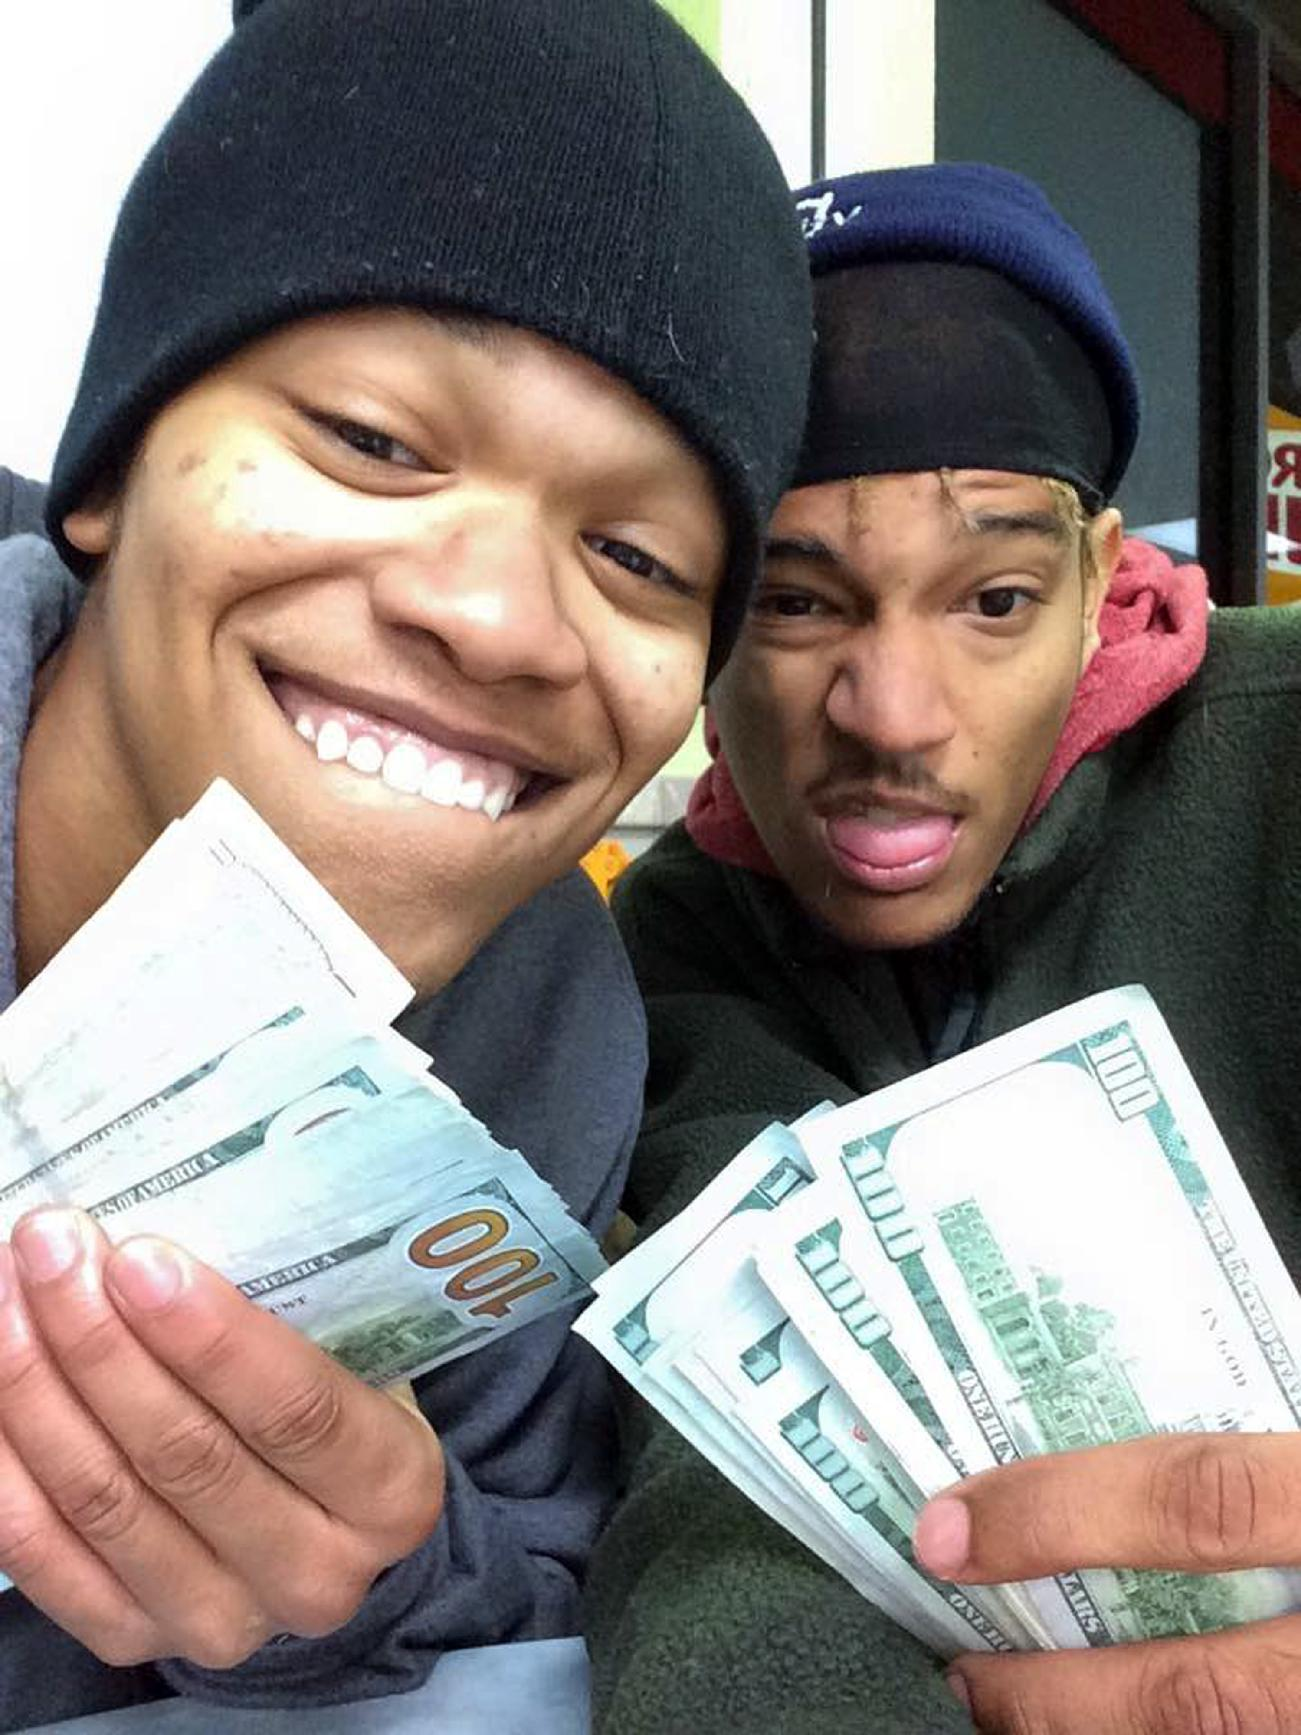 2 nabbed in iPad theft when selfies appear on owner's iCloud